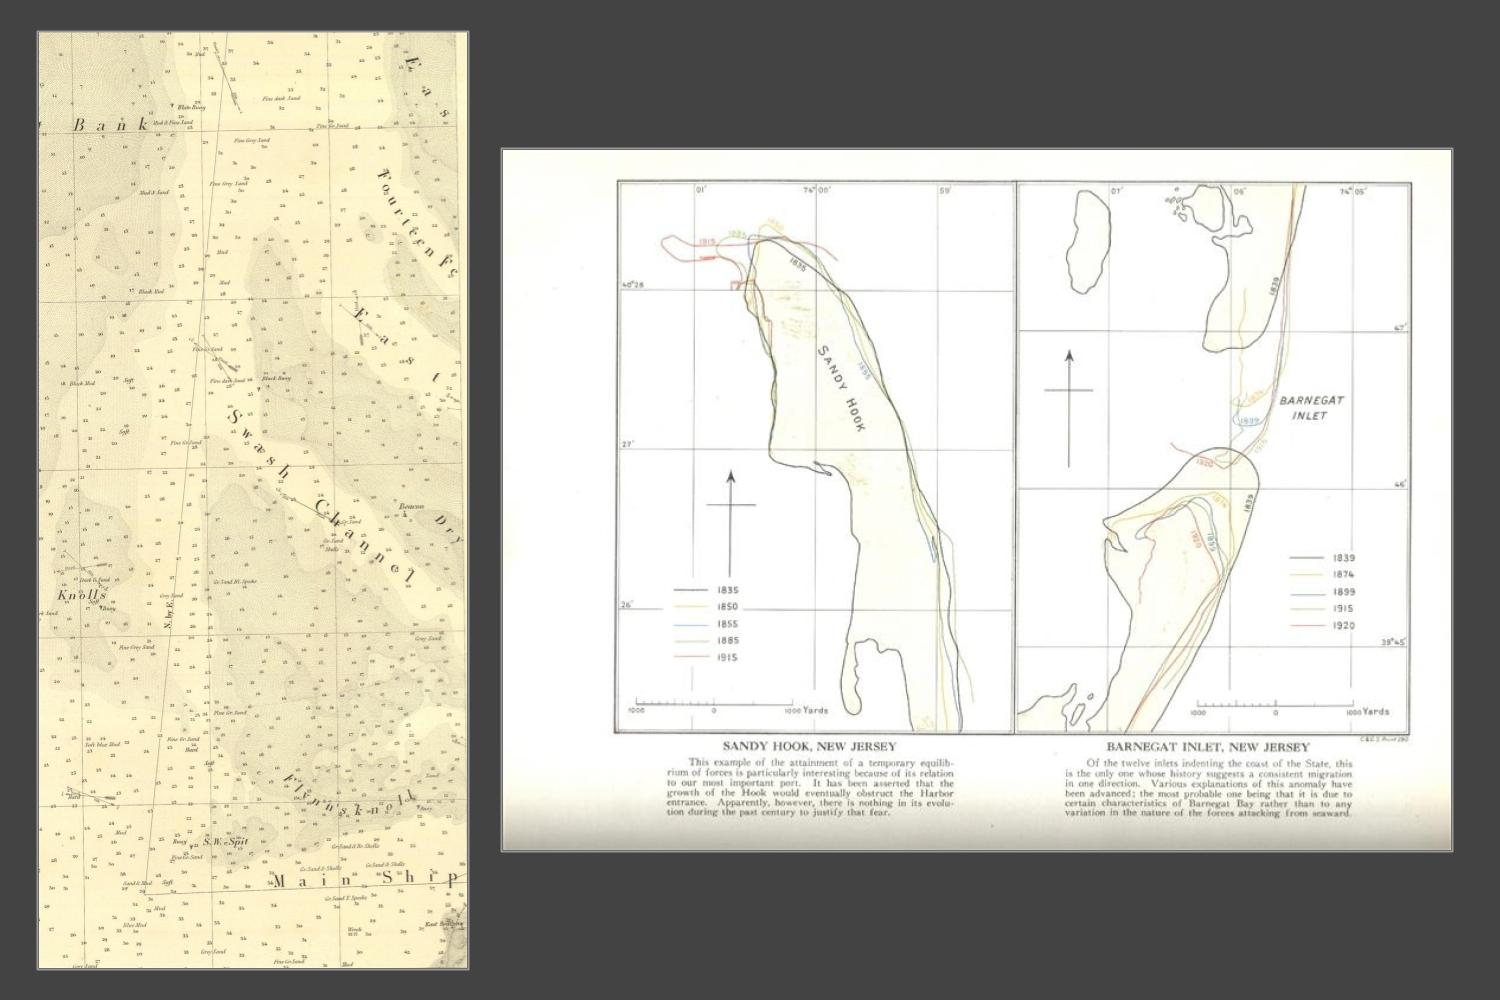 image shows two panels side by side. The panel on the left is a monotone chart of ocean depths and channels. The panel on the right shows a hand drawn map of sand deposits in two New Jersey estuaries. Coastlines are drawn at various years from 1835 to 1920.